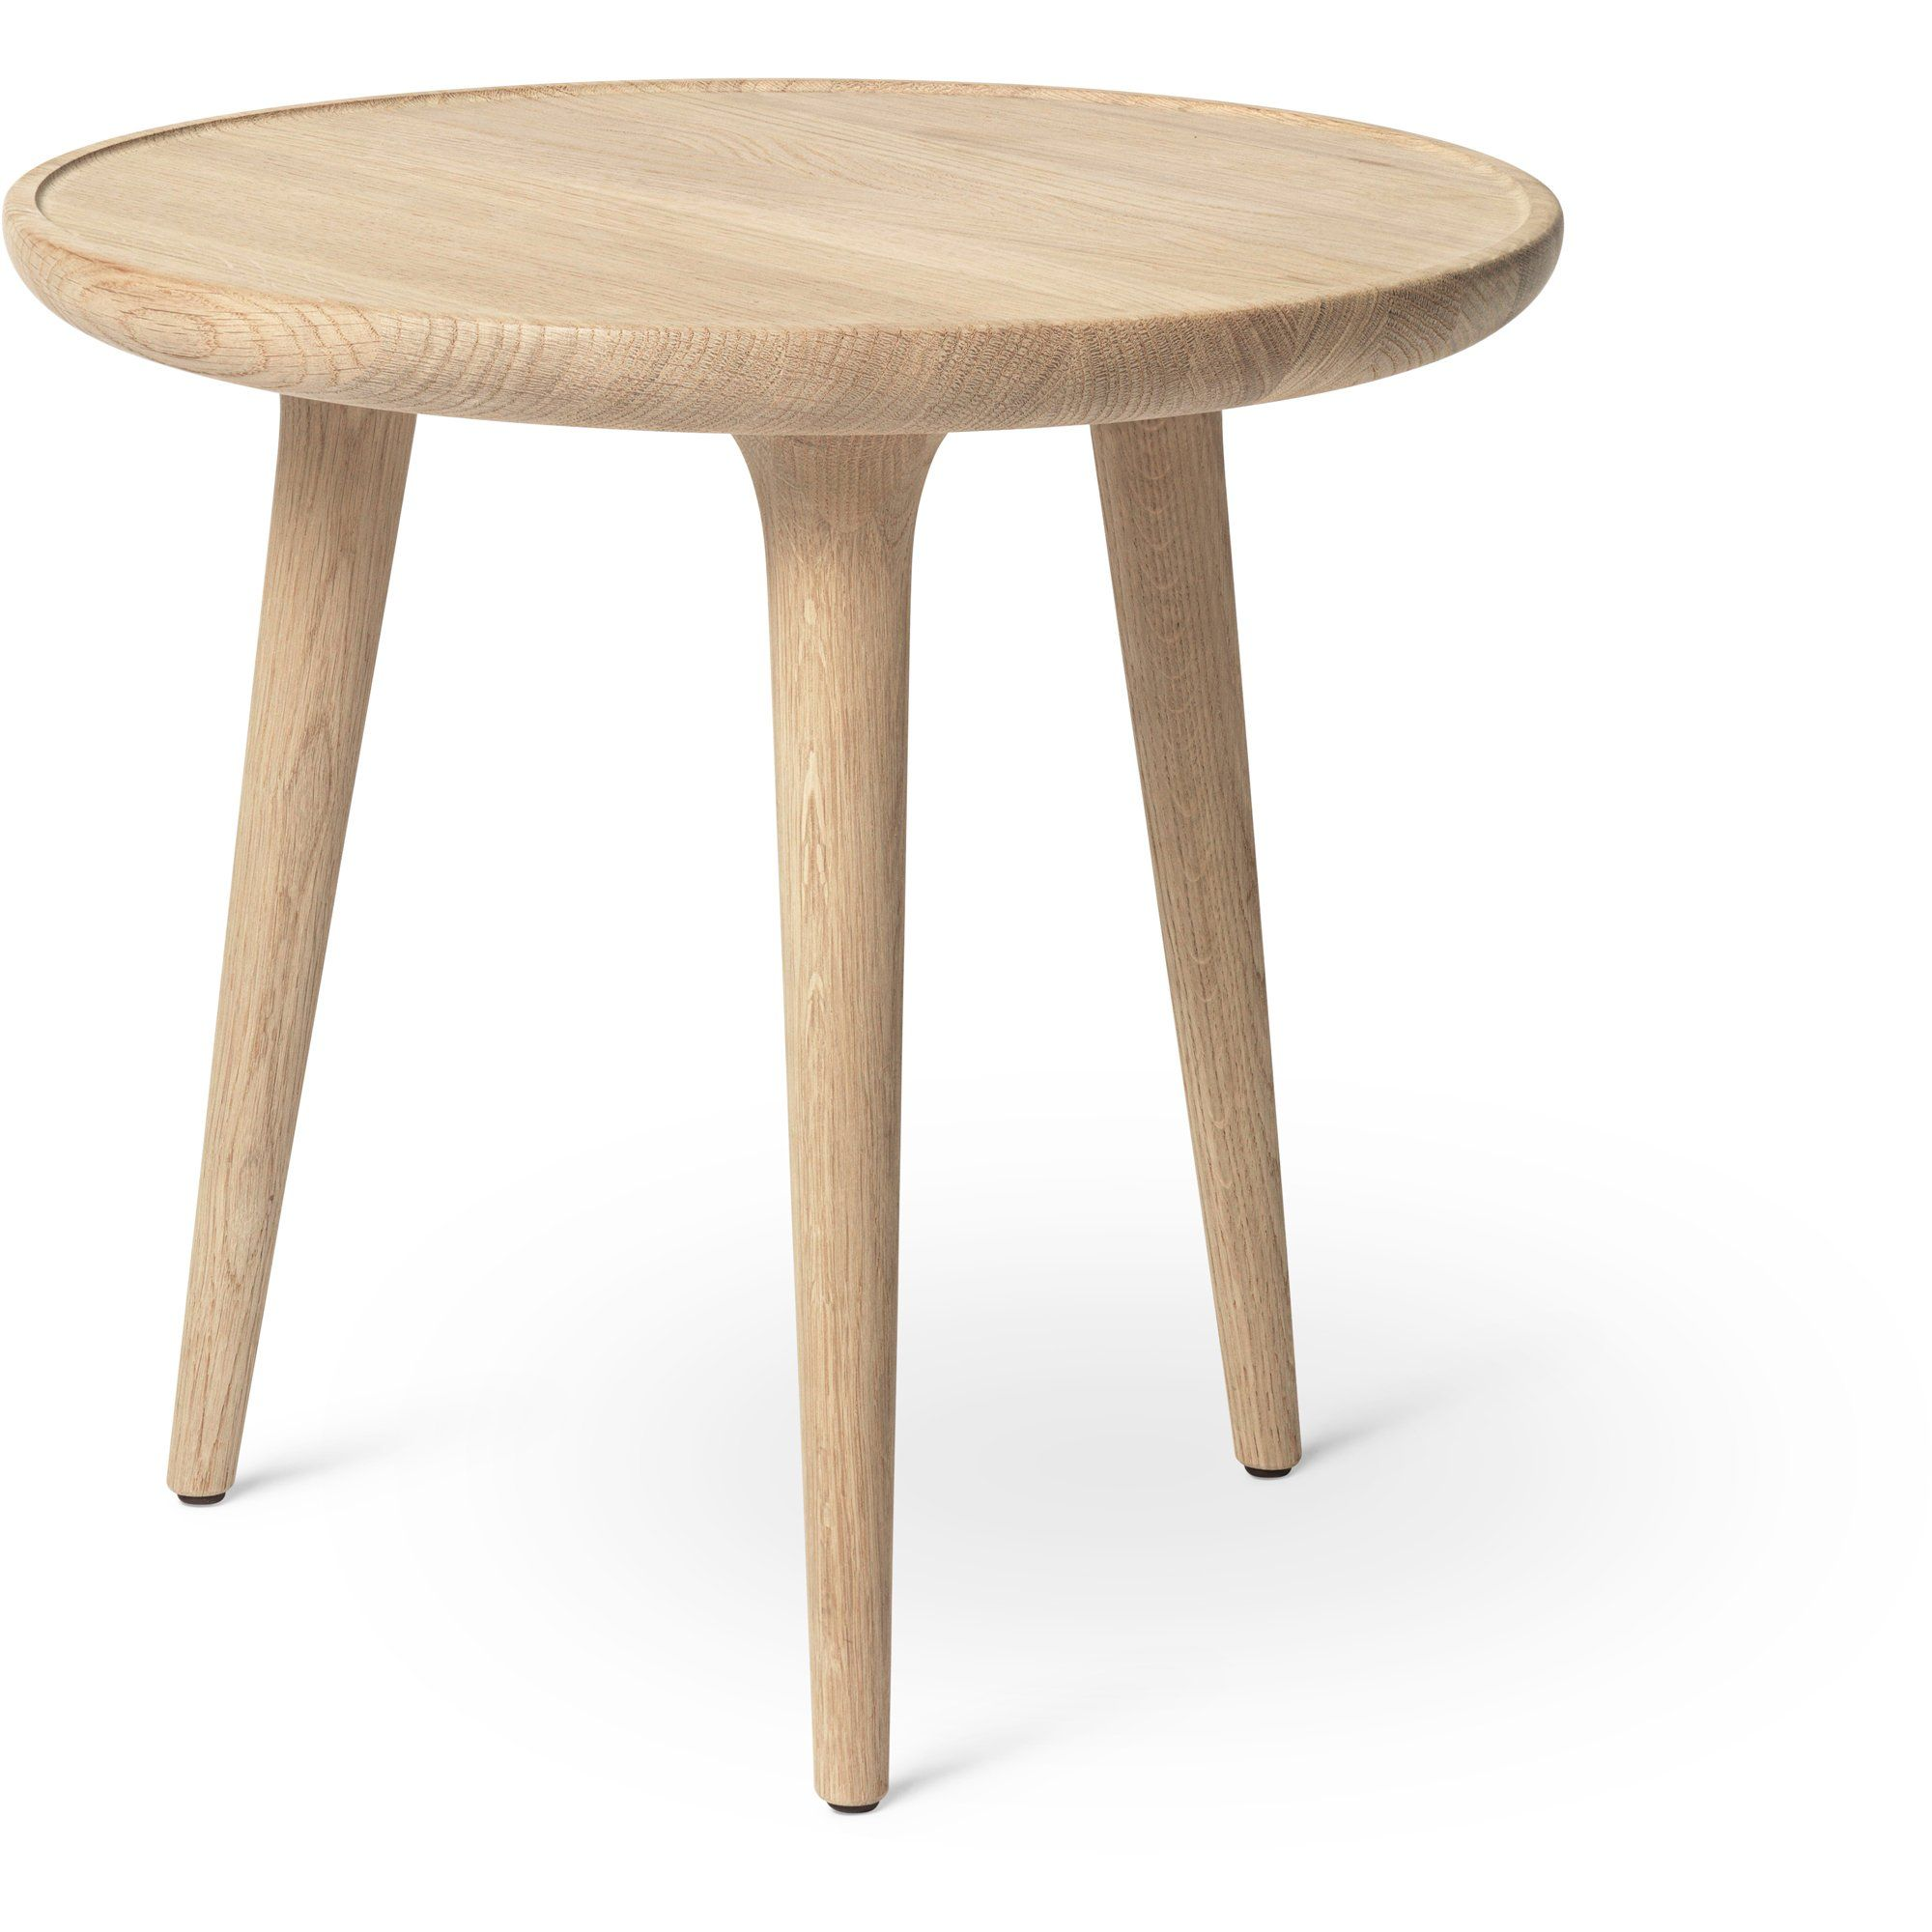 Accent Side Table Matte Lacquered Oak In 2021 Accent Side Table Side Table Table [ 2000 x 2000 Pixel ]